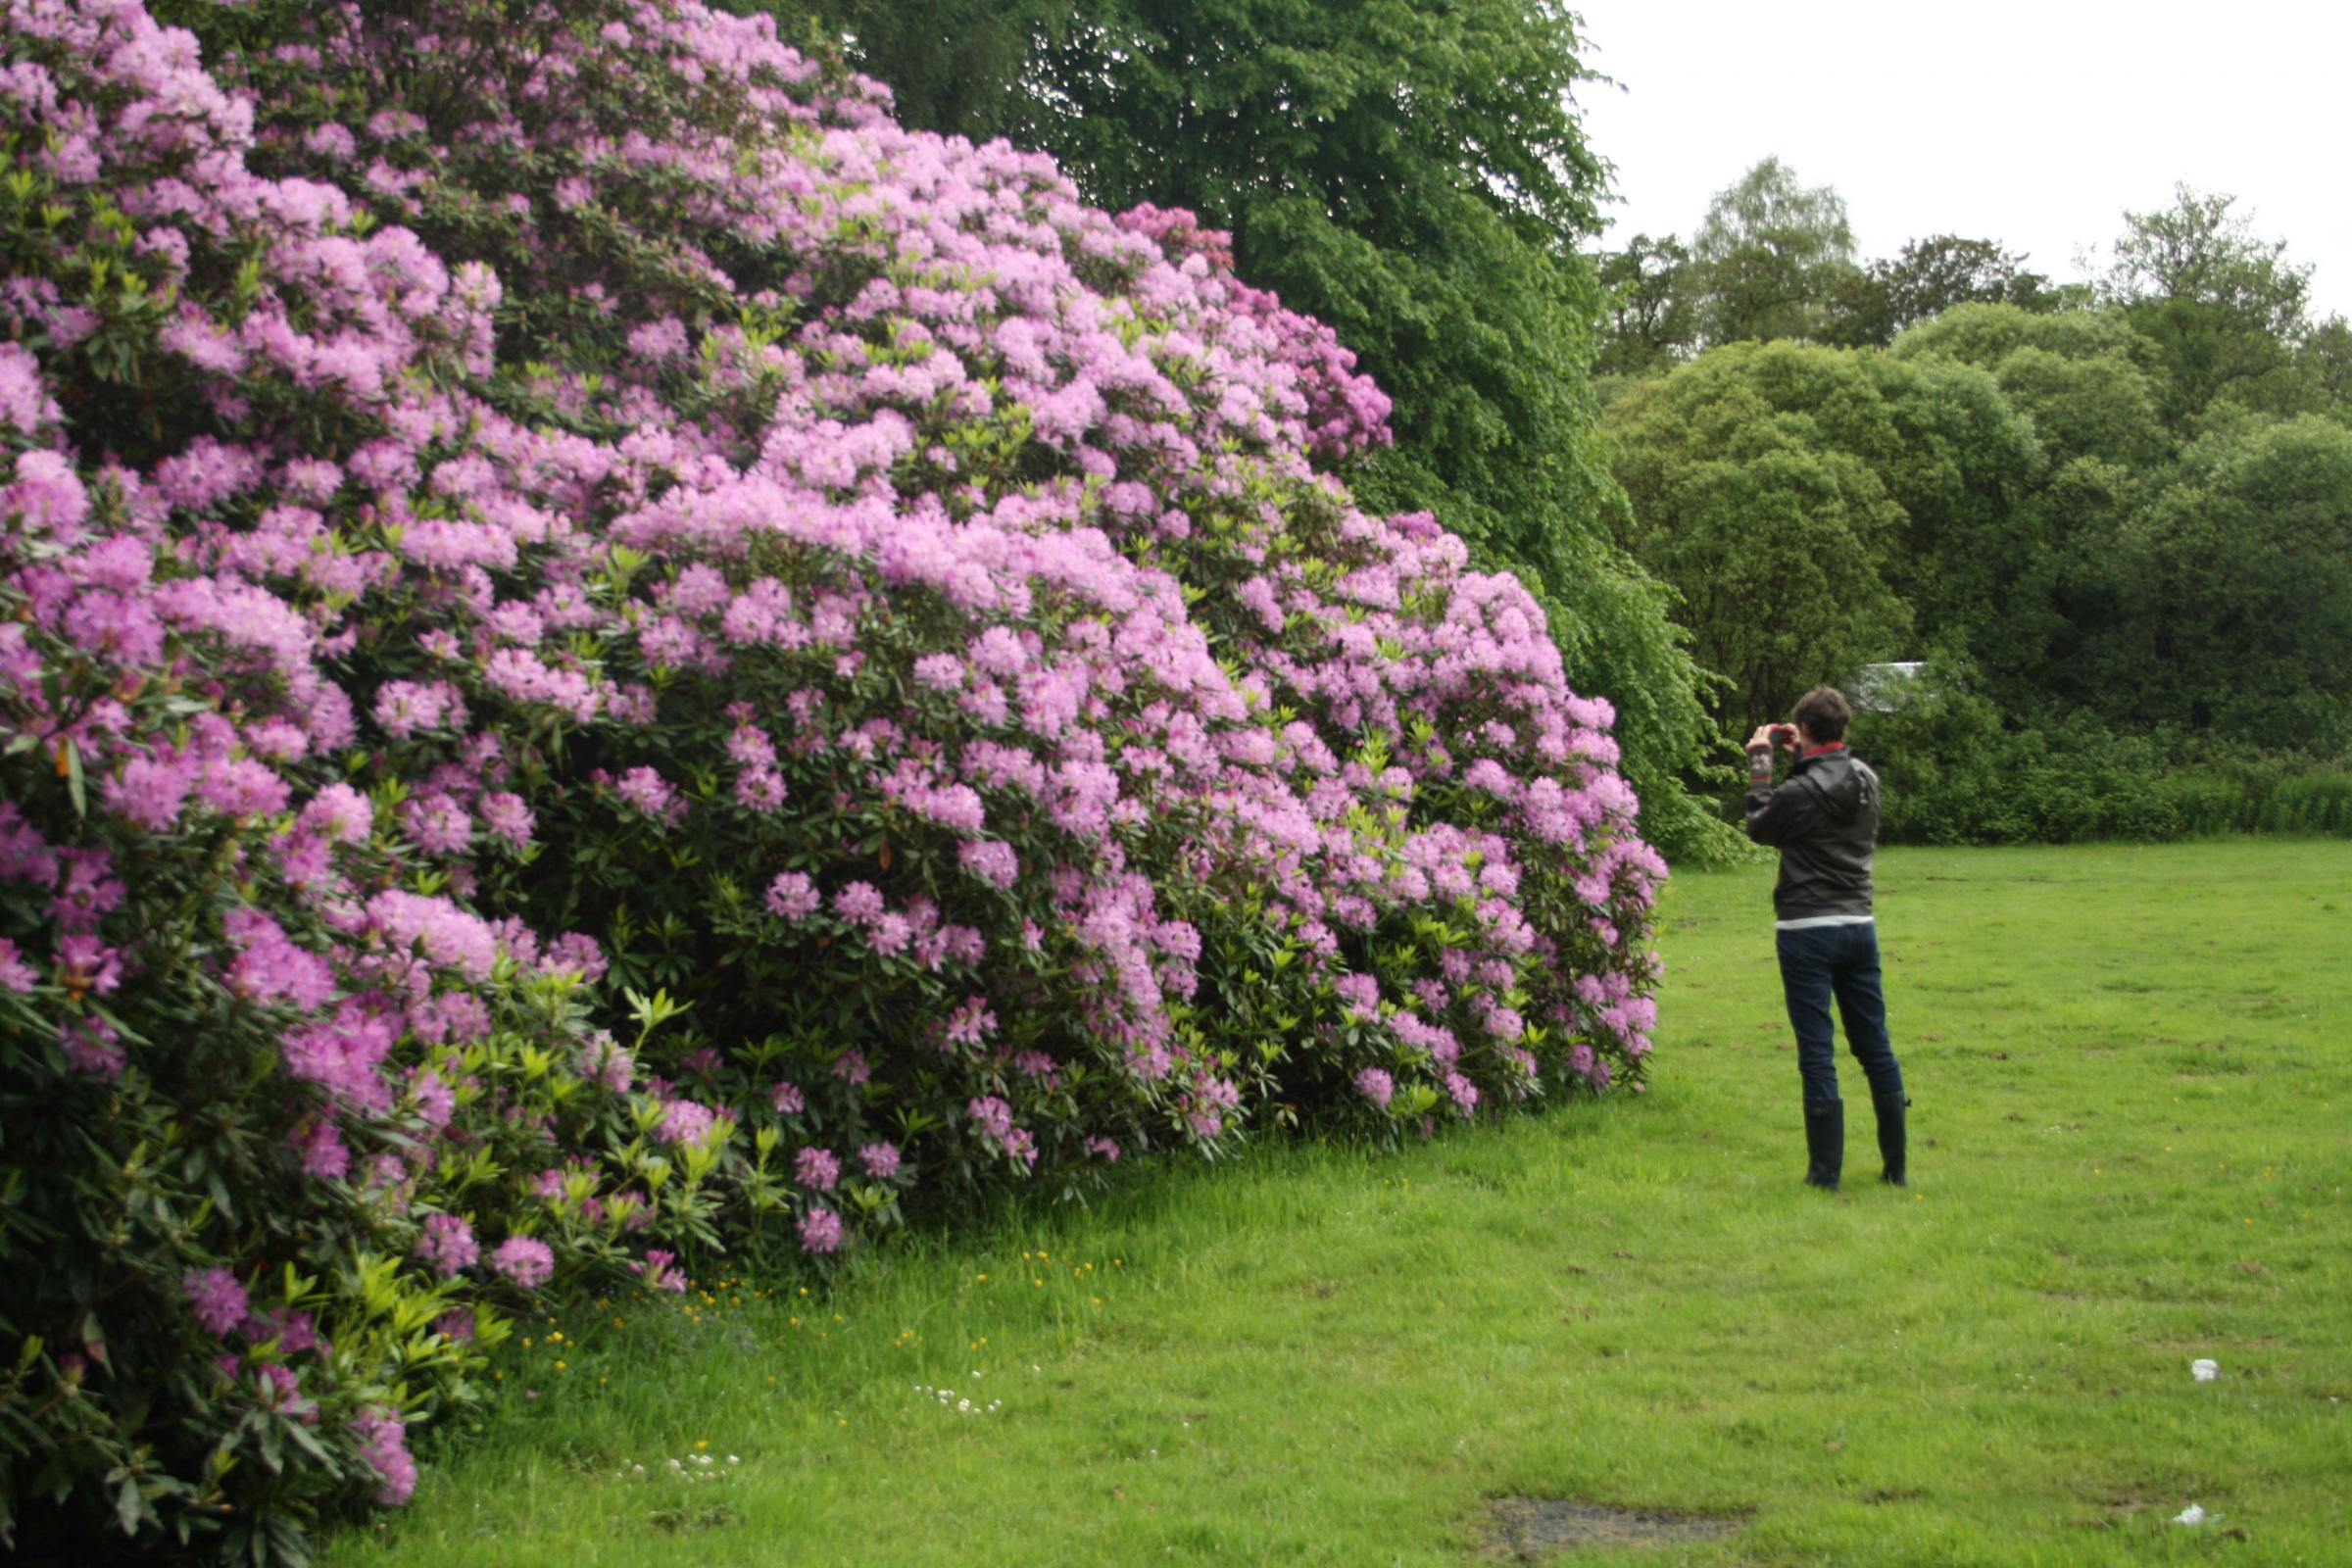 Rhododendrons may look pretty but they are strangling native species